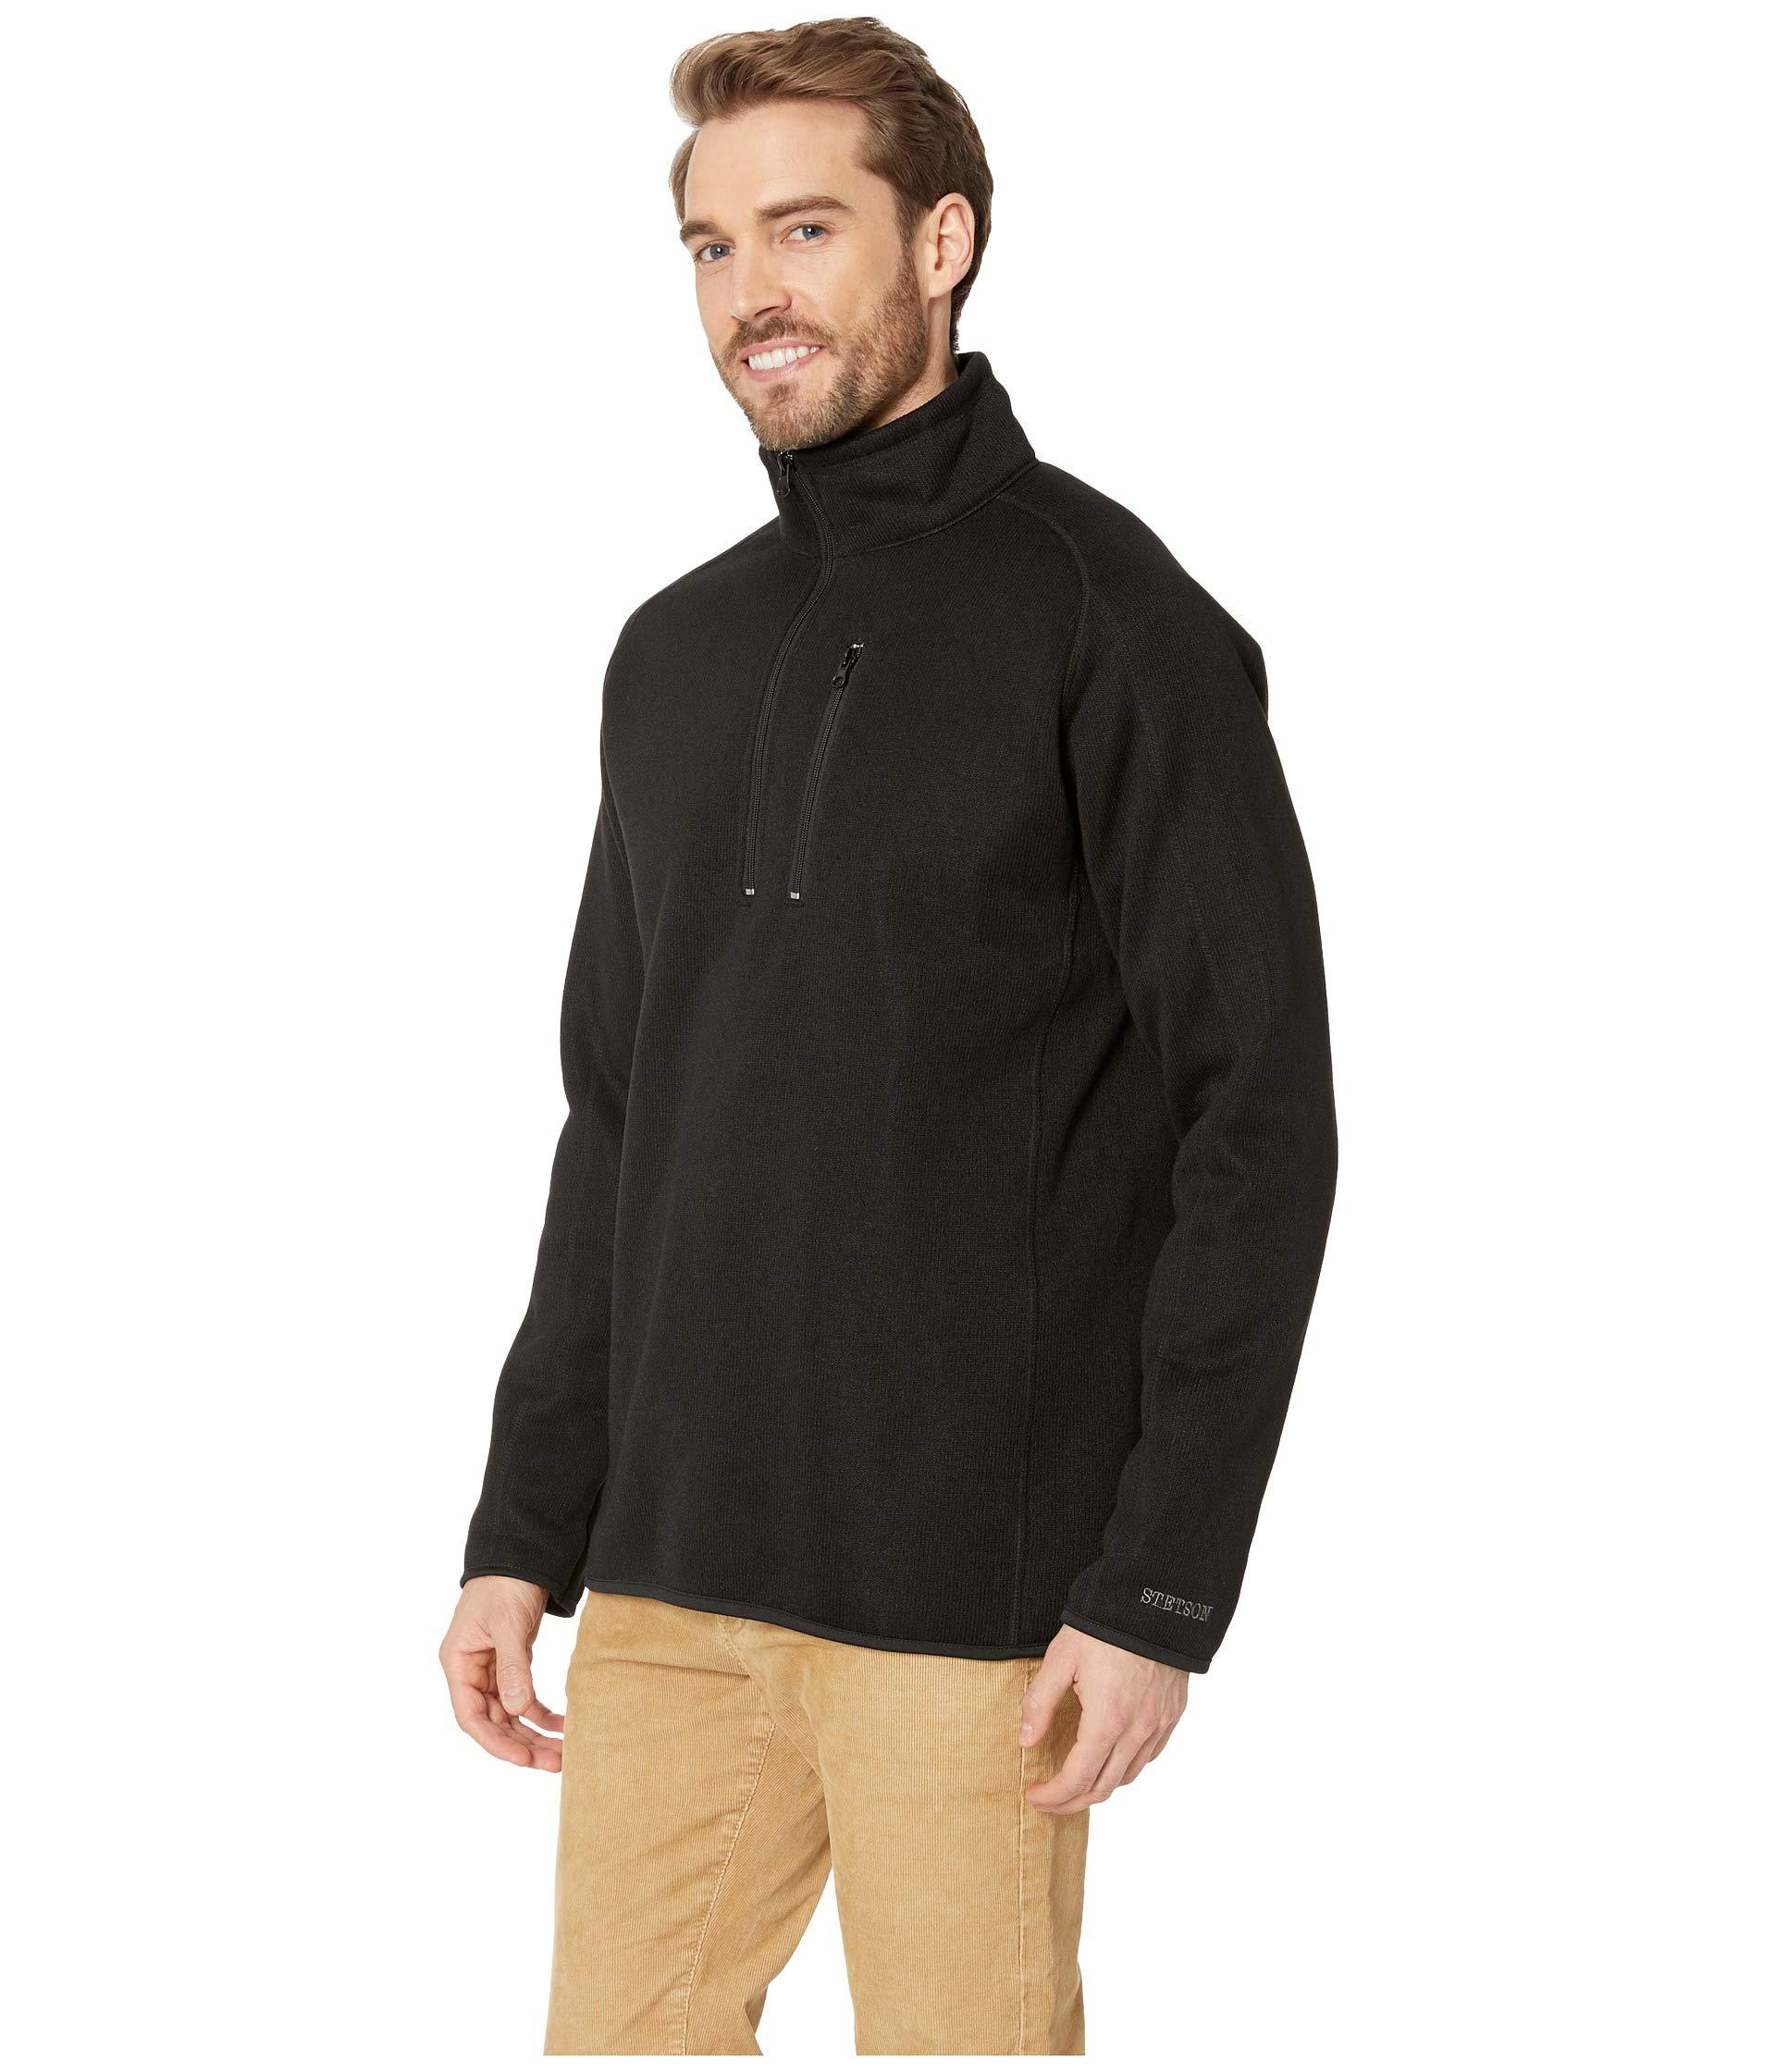 62ceeaec Lyst - Stetson 2393 Bonded Sweater in Black for Men - Save 38%